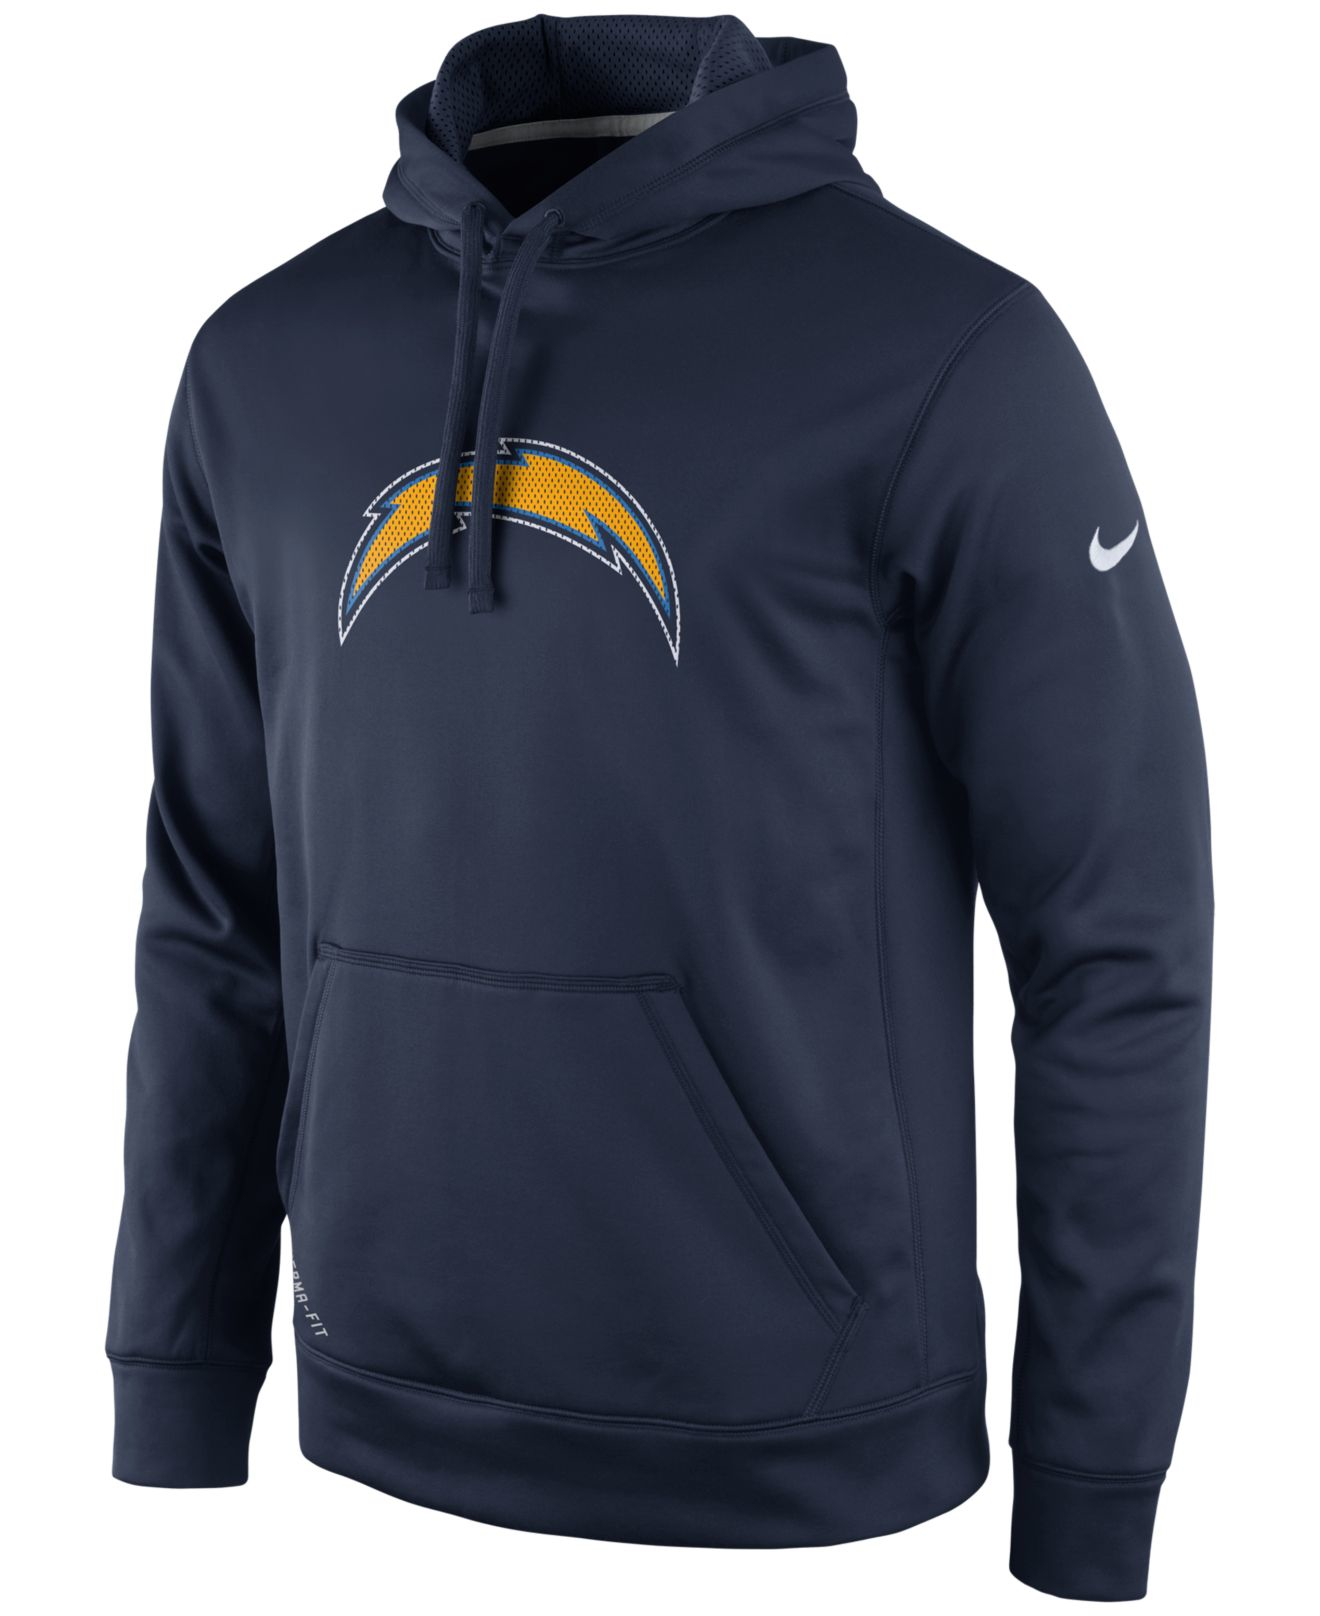 San Diego Chargers Clothing: Nike Men's San Diego Chargers Performance Po Dri-fit